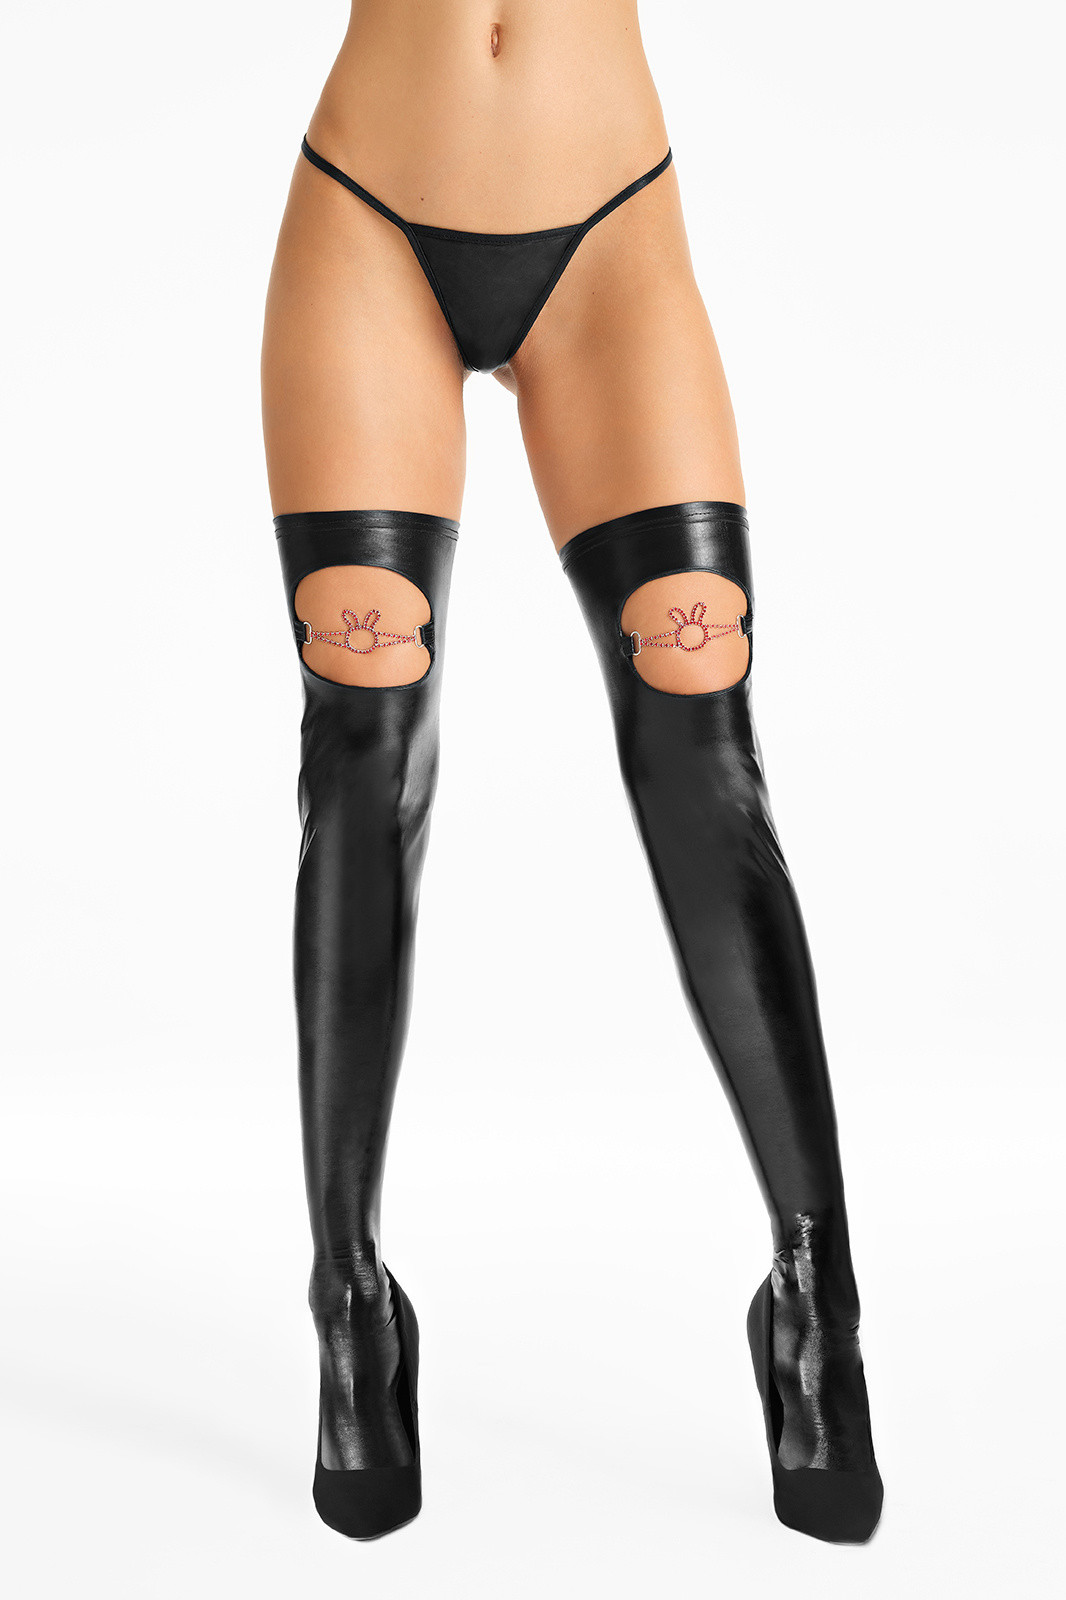 SHINY RABBIT Stockings S536 - ..